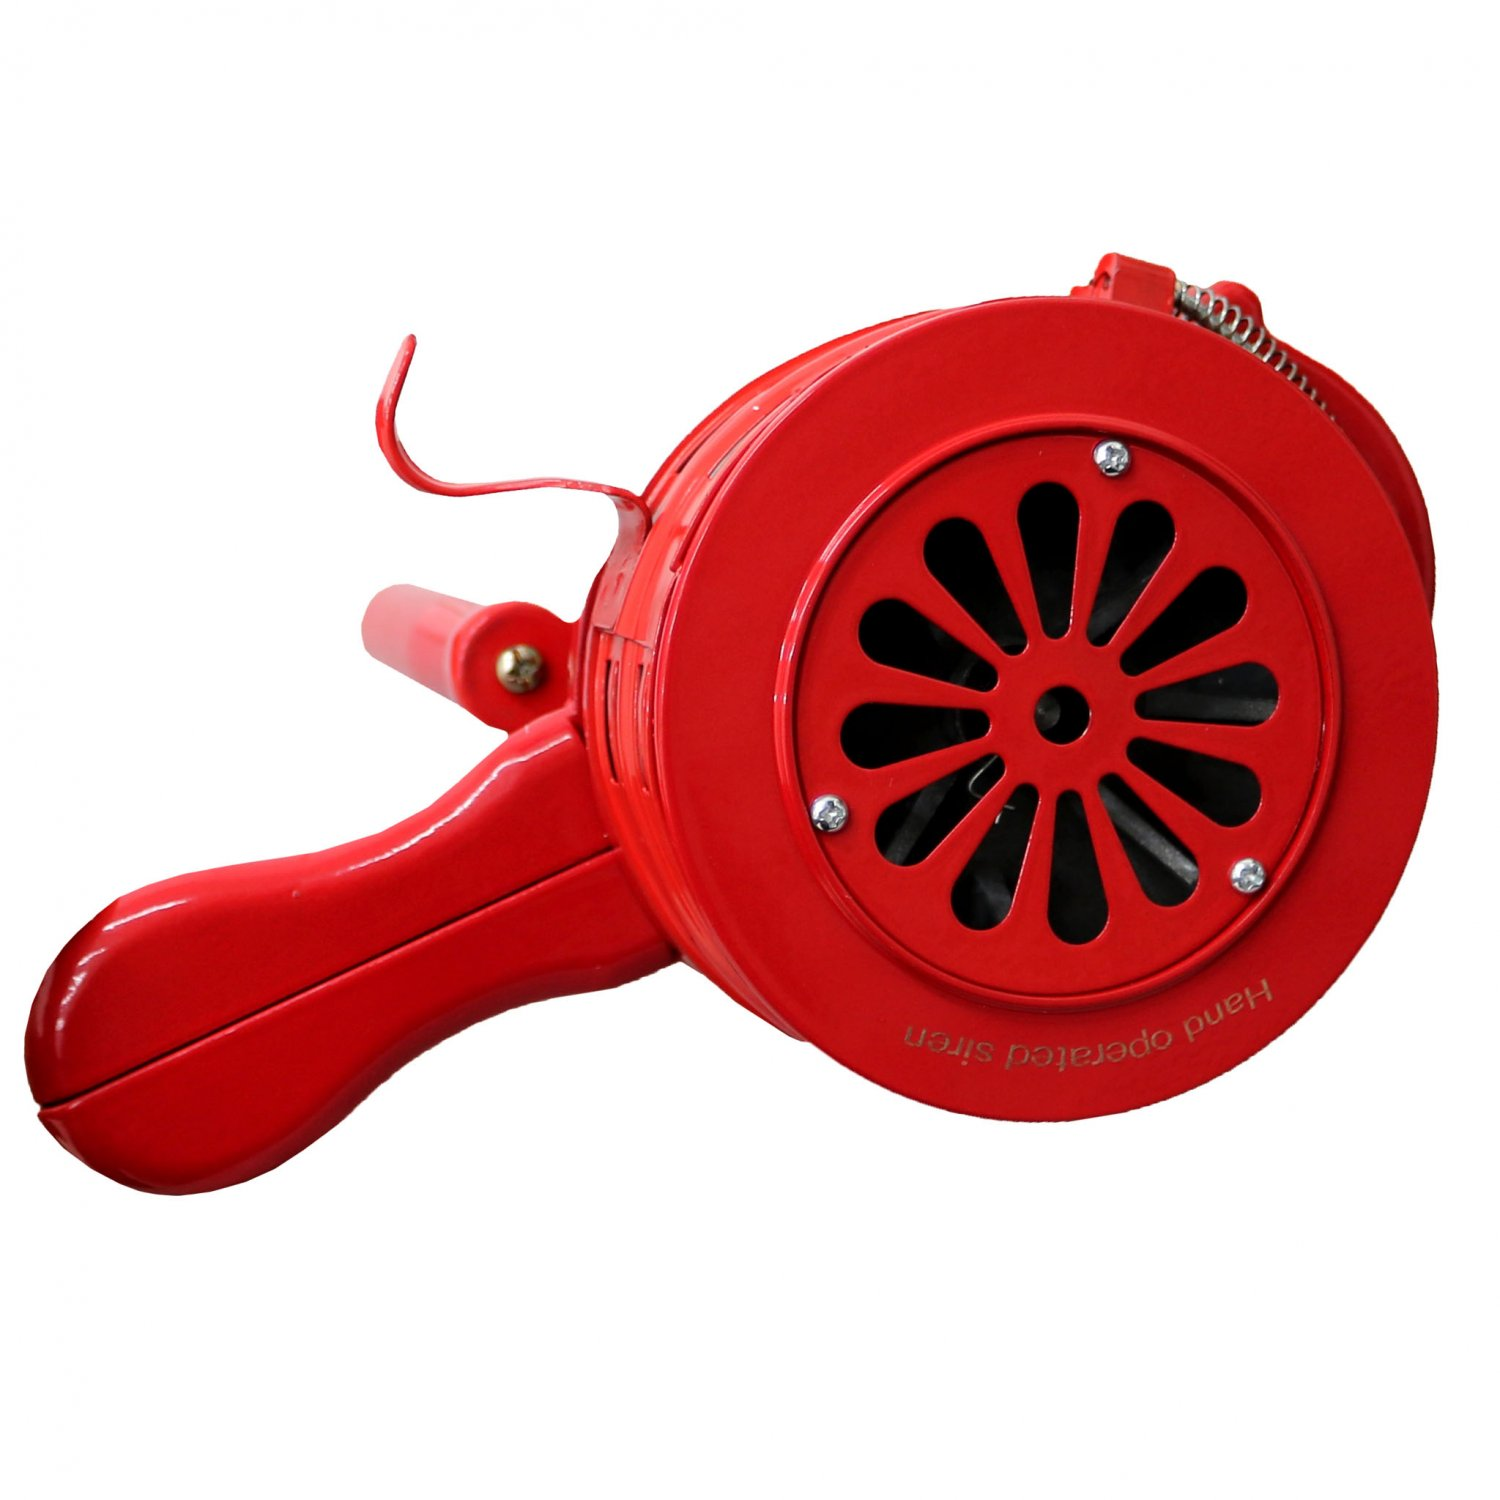 Hand Operated Crank Air Raid Safety Siren Fire Emergency Alarm